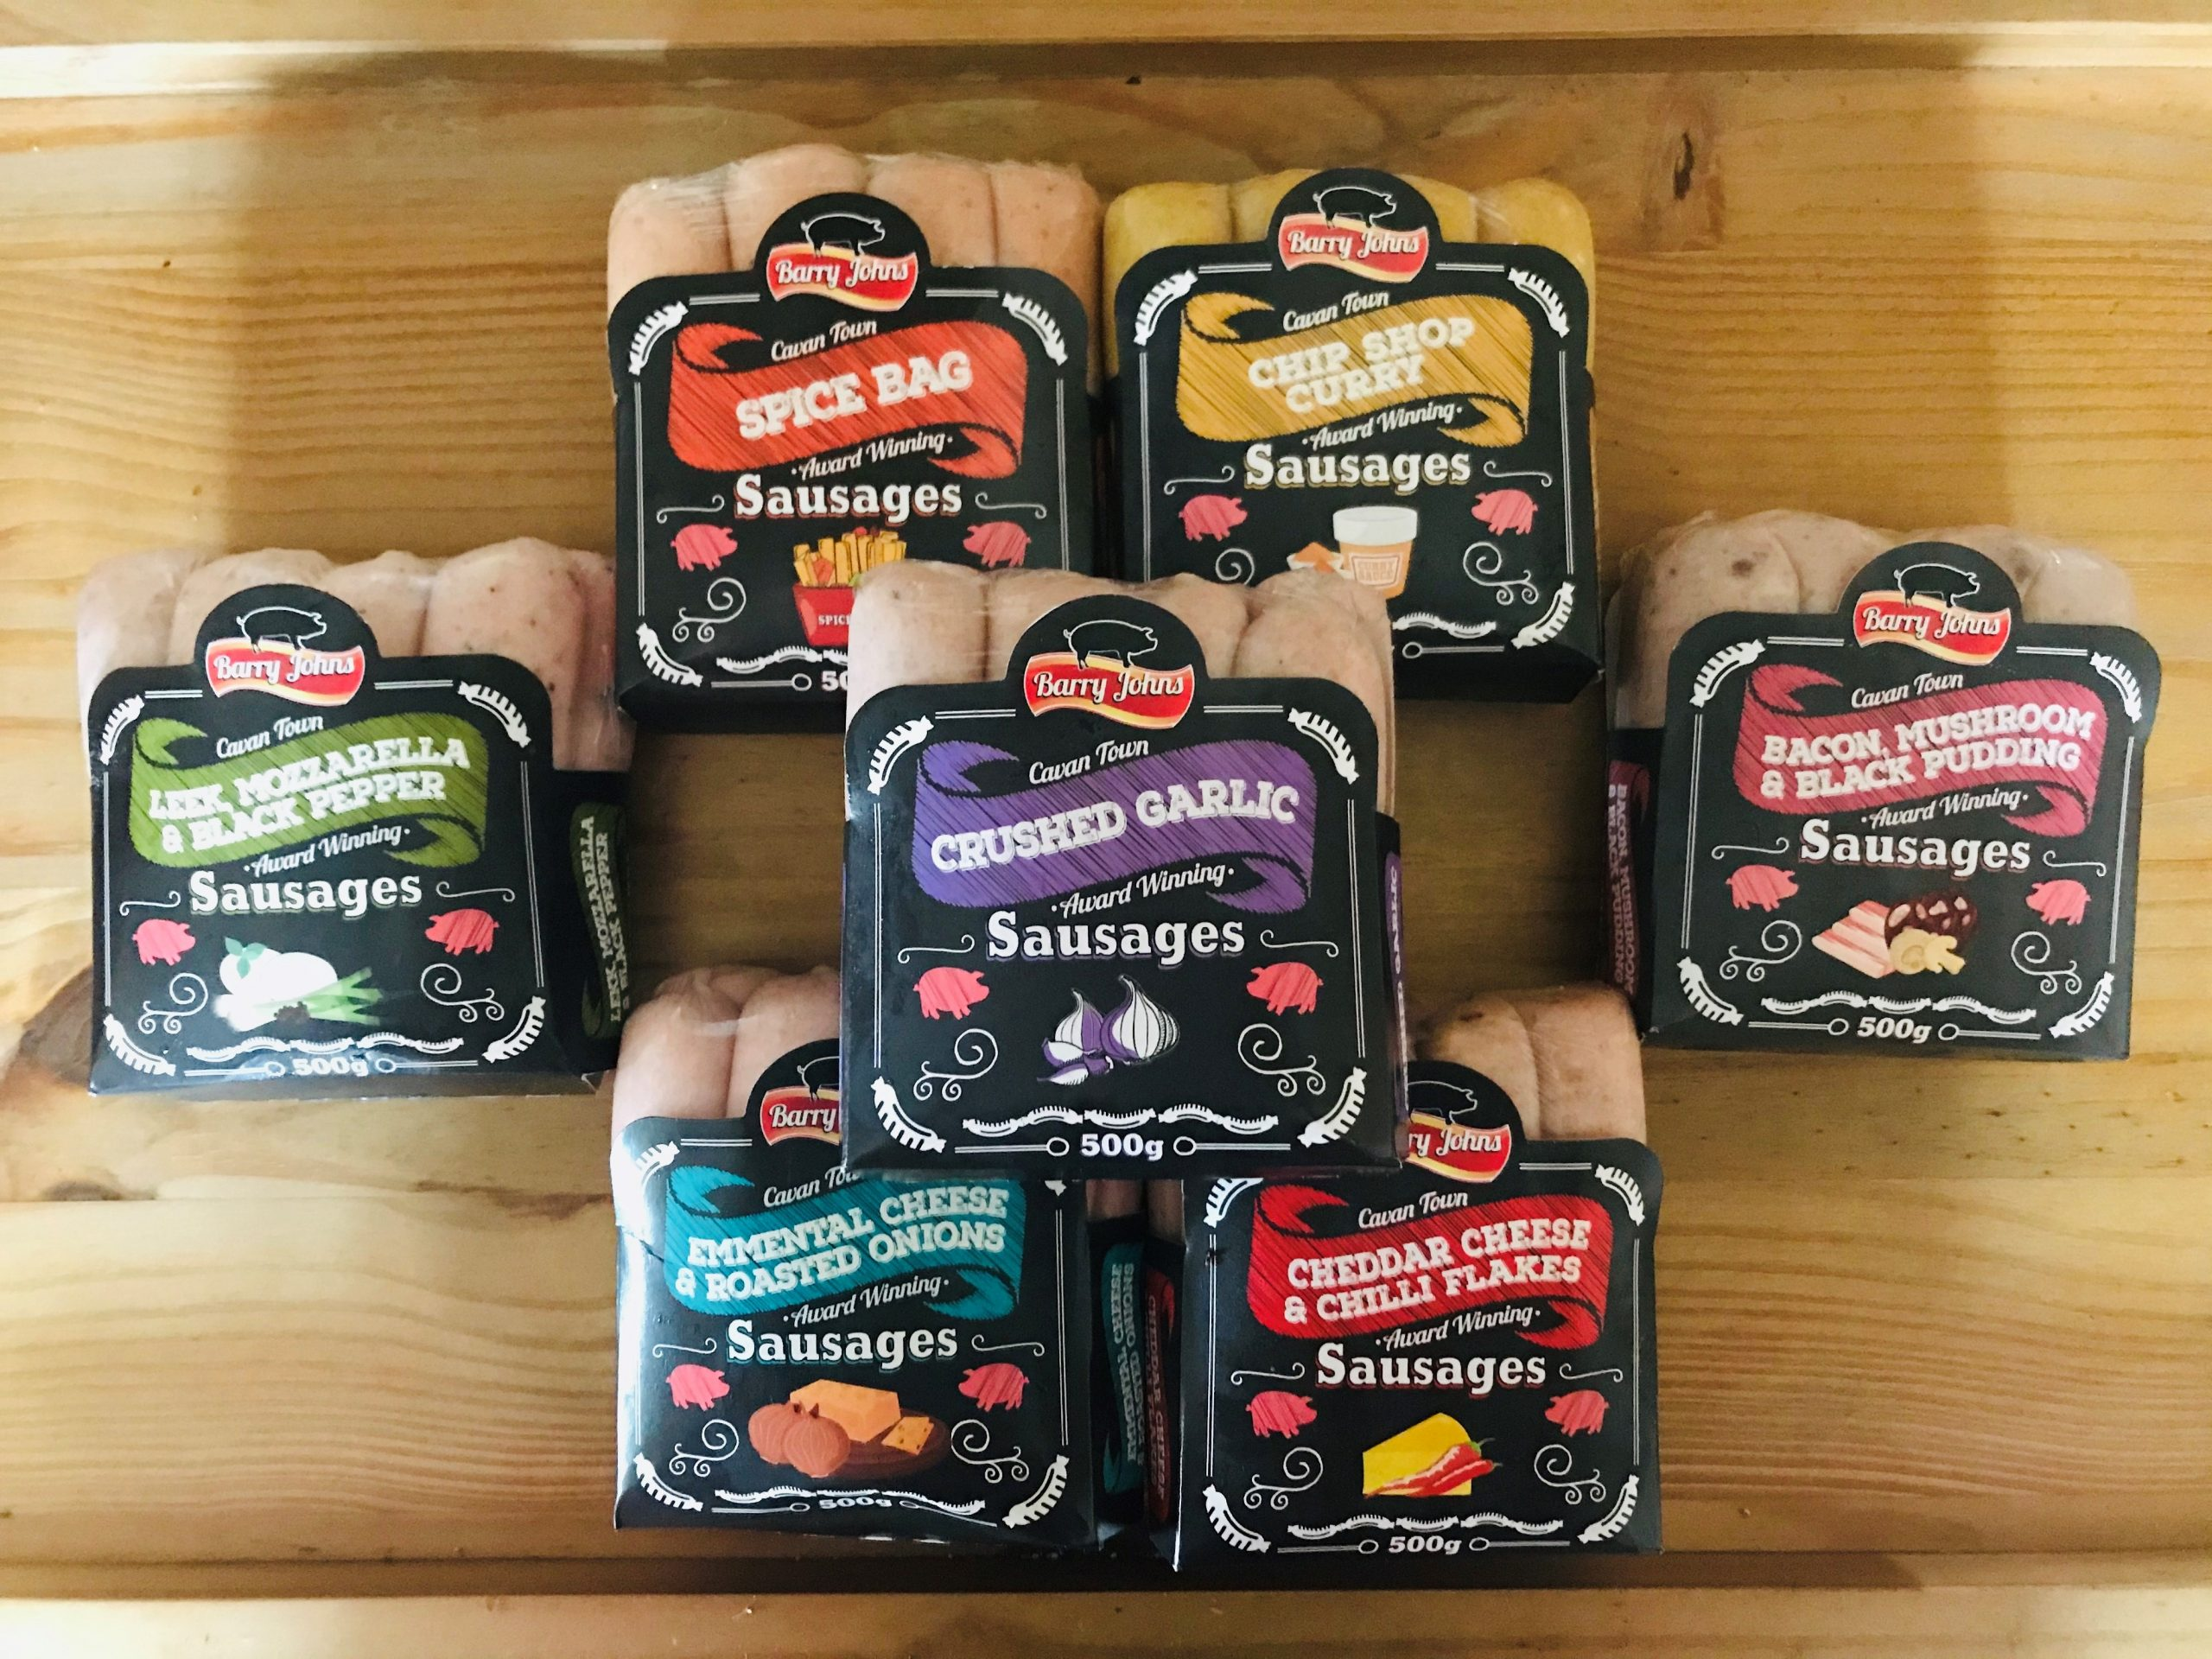 Selection of Gourmet Barry John Sausages - Handmade Flavoured Sausages